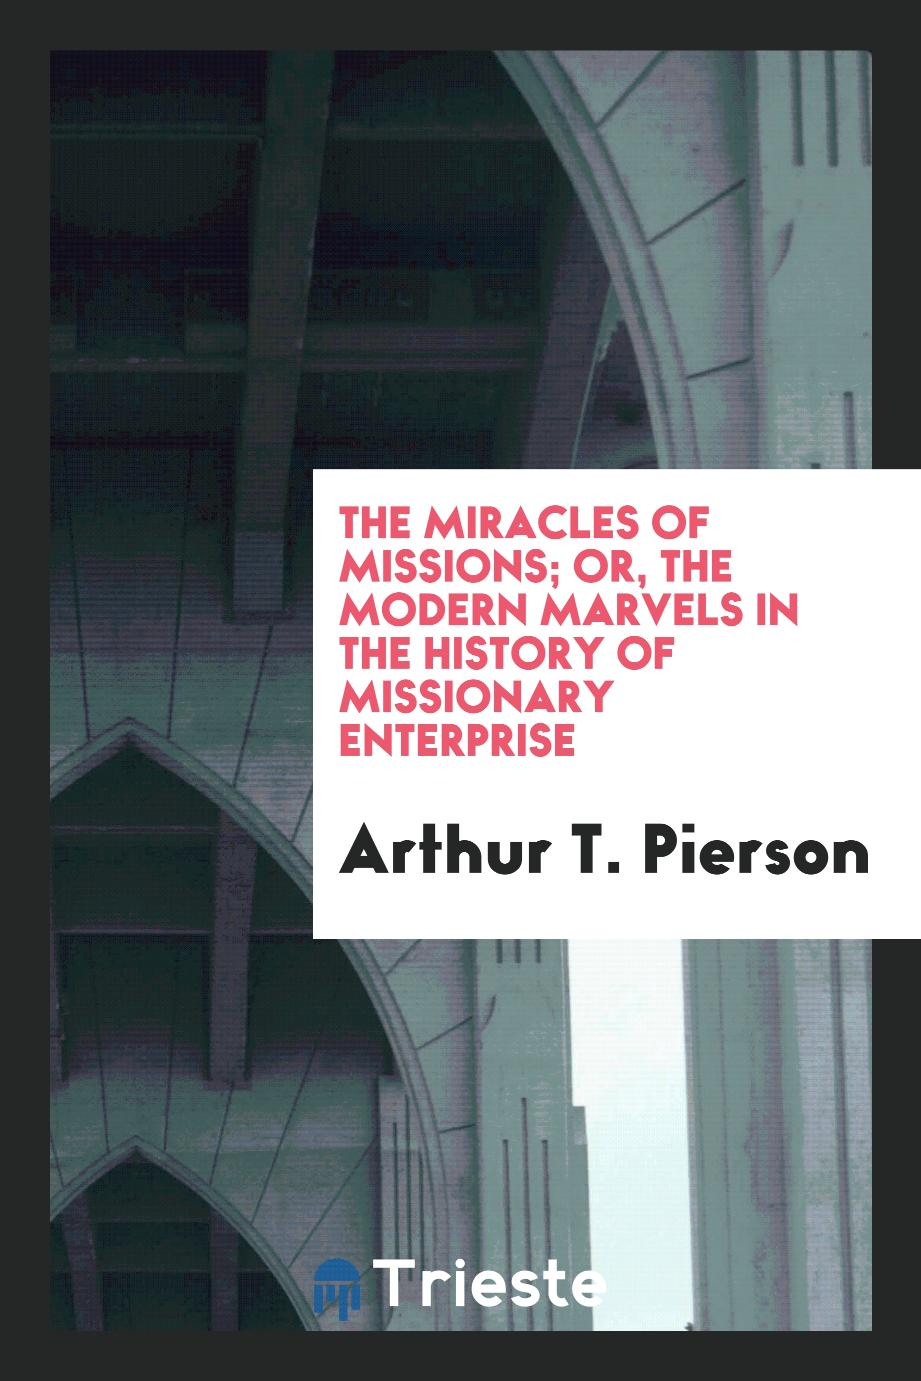 The miracles of missions; or, the modern marvels in the history of missionary enterprise